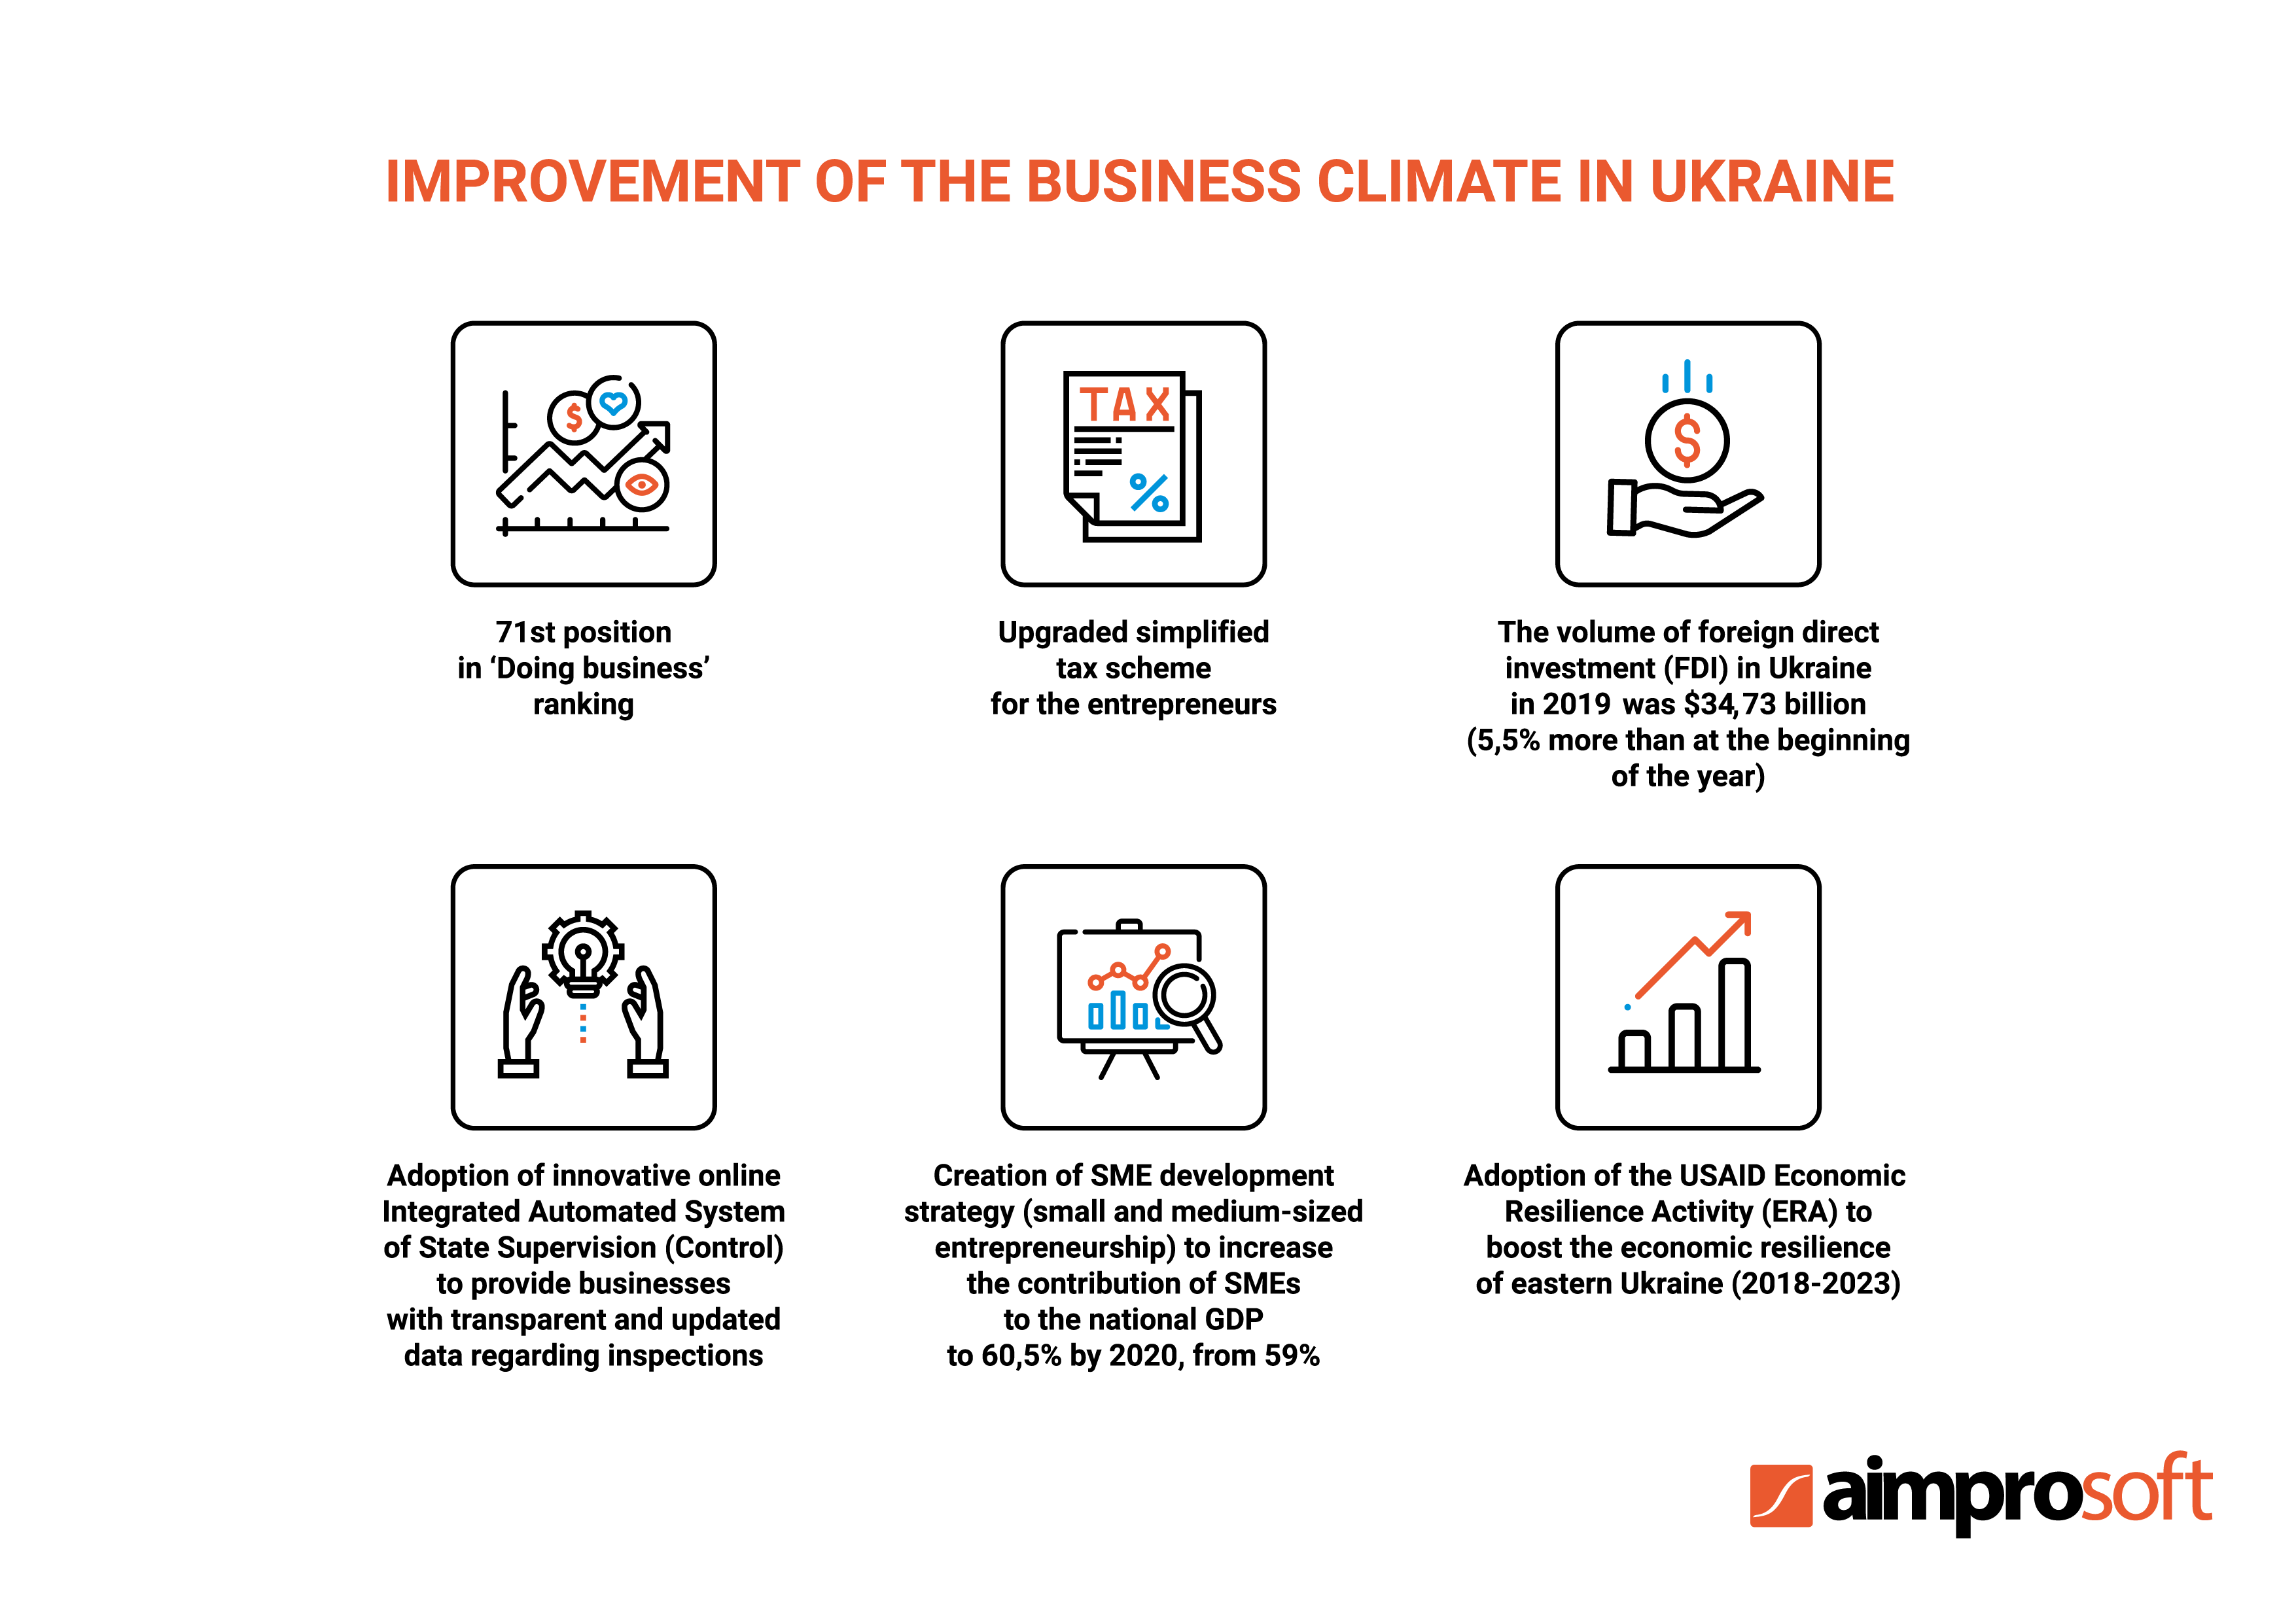 Improvement of the business climate in Ukraine